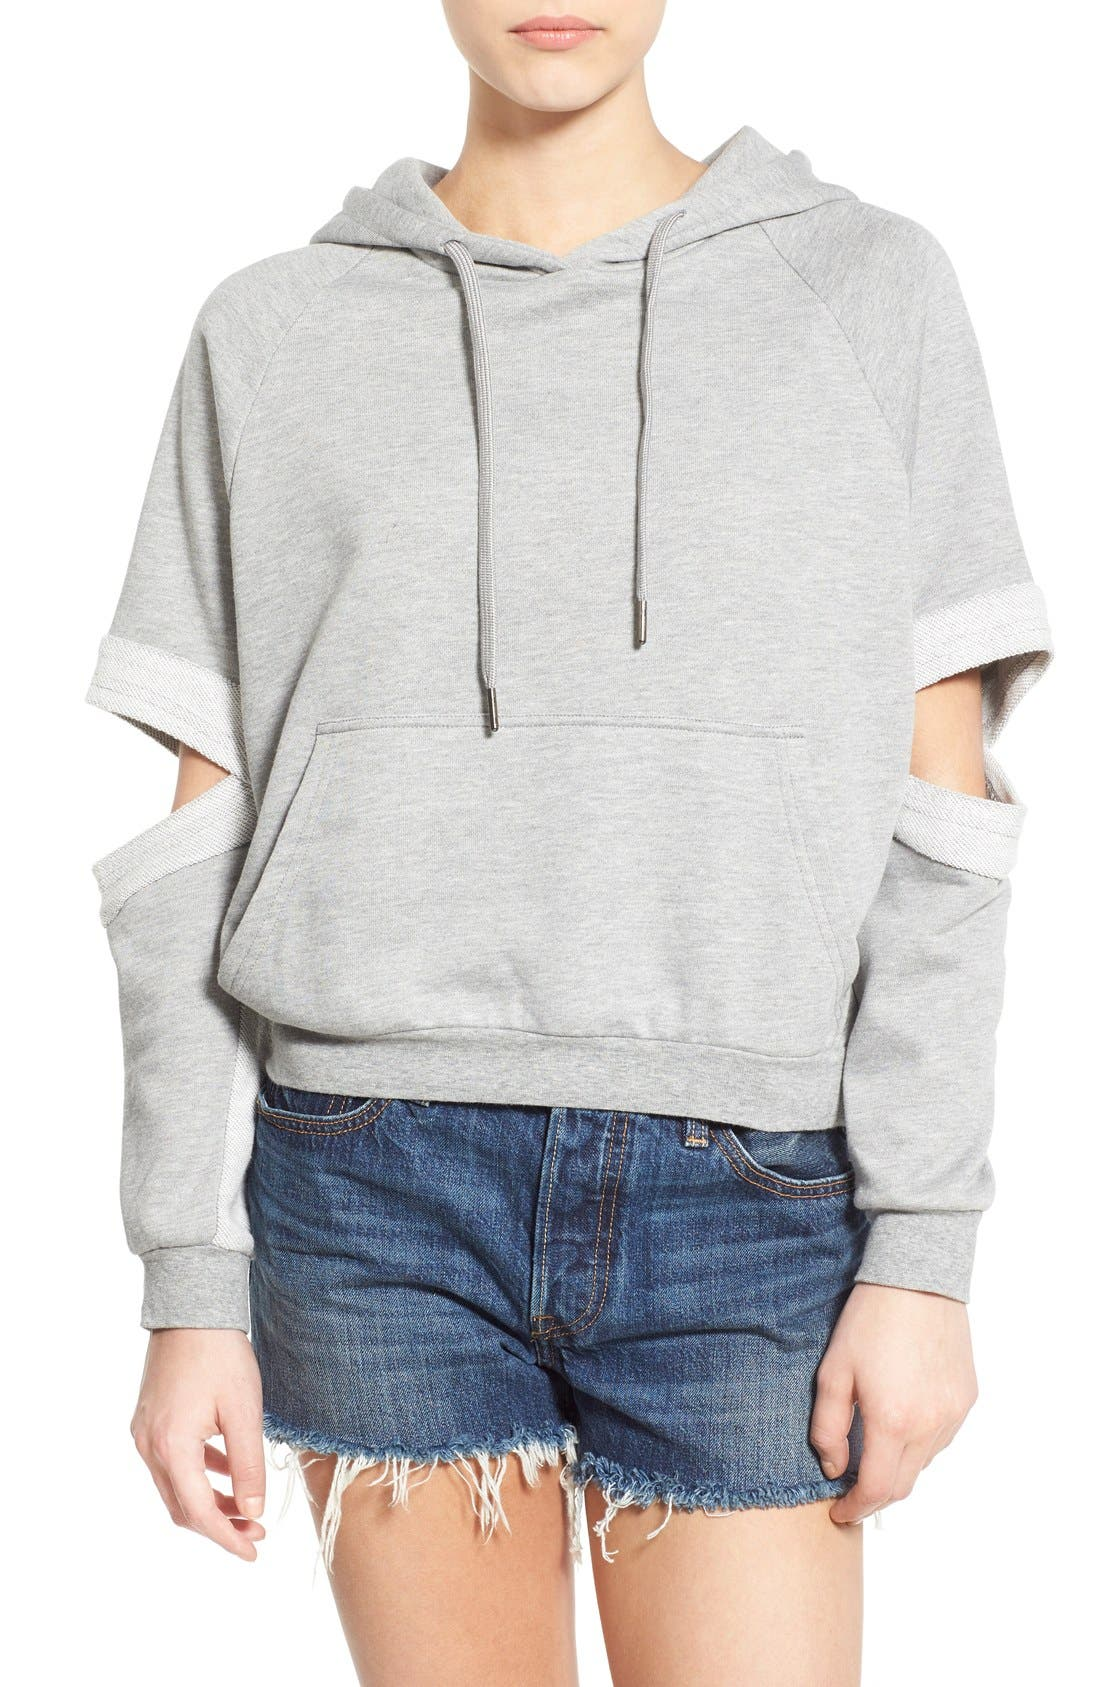 Main Image - PUBLISH BRAND 'Lucia' Cutout Sleeve Hoodie